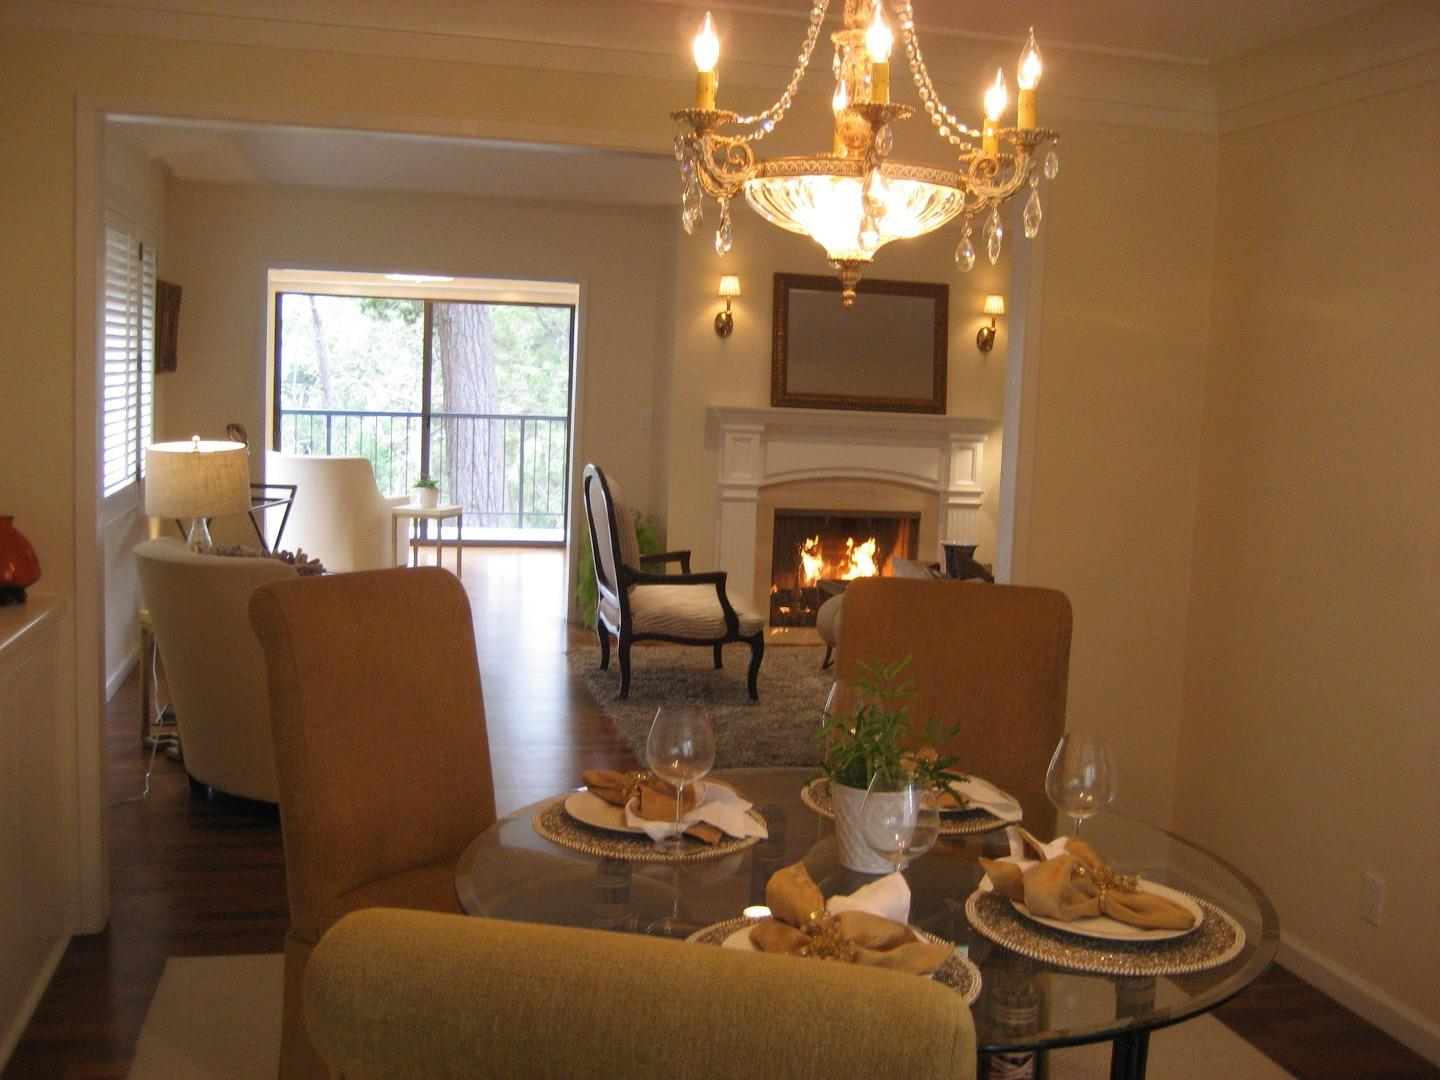 Additional photo for property listing at 248 Del Mesa Carmel  Carmel, カリフォルニア 93923 アメリカ合衆国